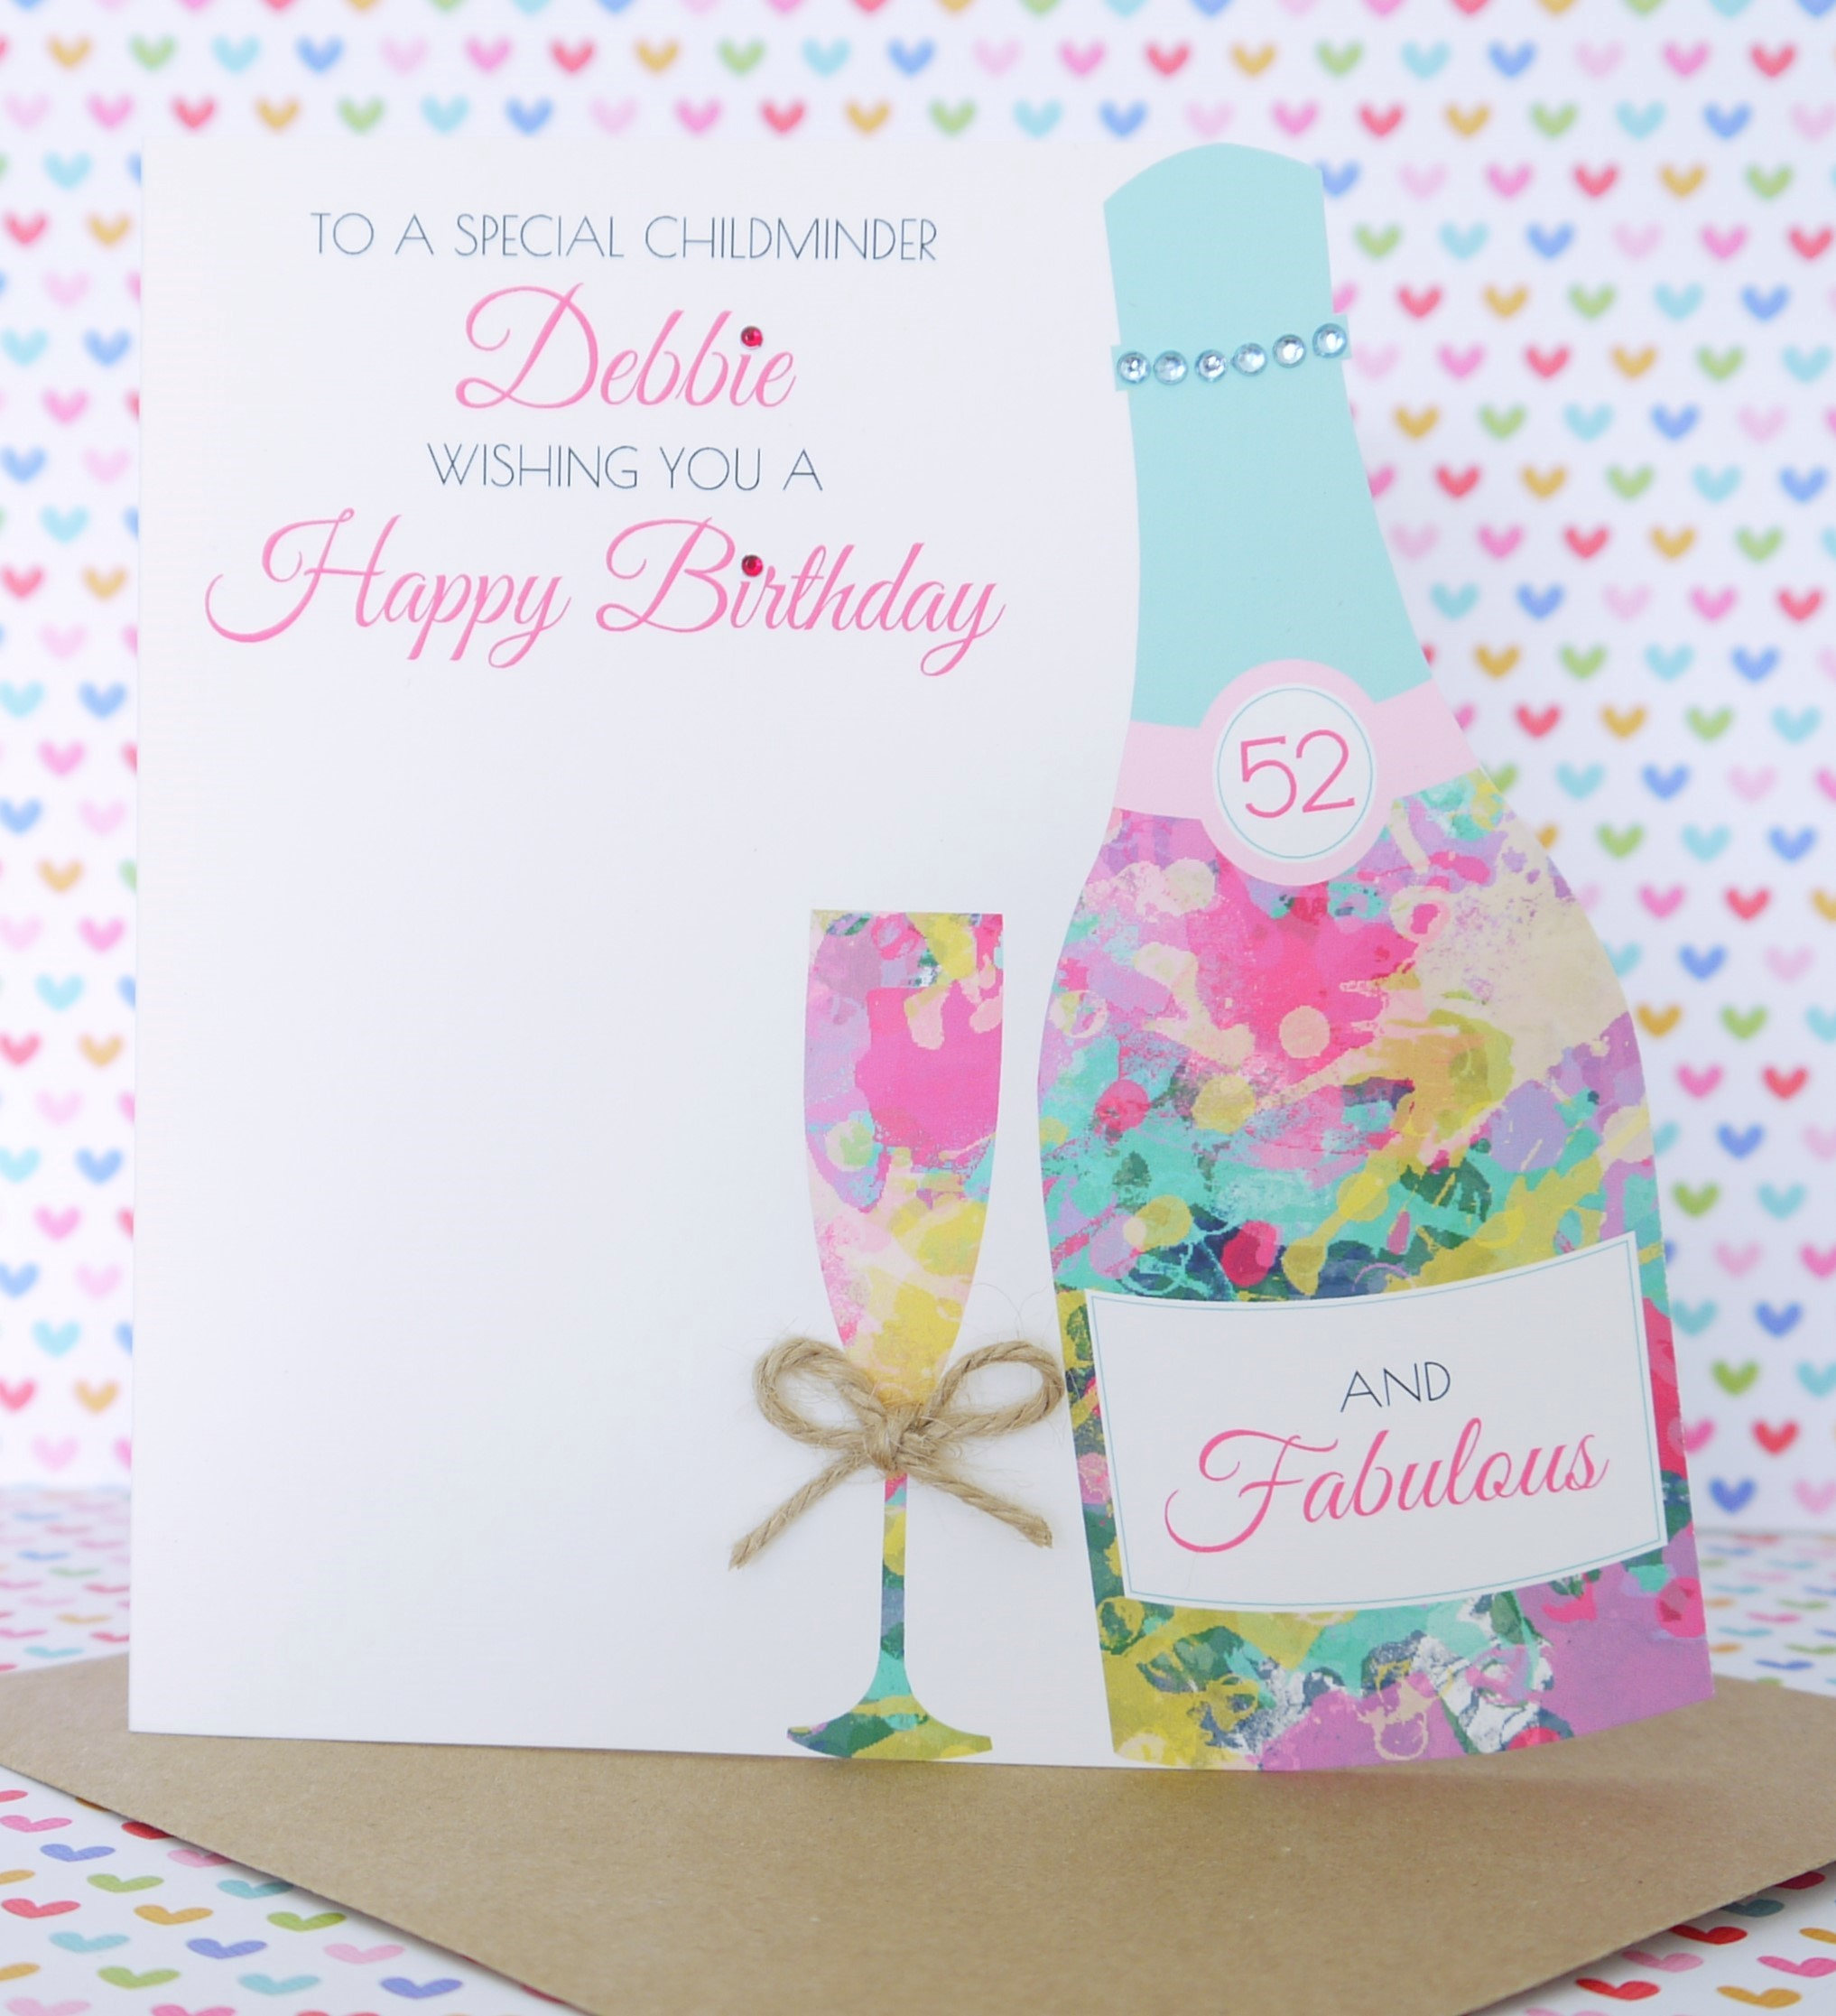 Personalised handmade birthday card 18th 21st 30th 40th50th60th personalised handmade birthday card 18th 21st 30th 40th daughter cousin bookmarktalkfo Choice Image